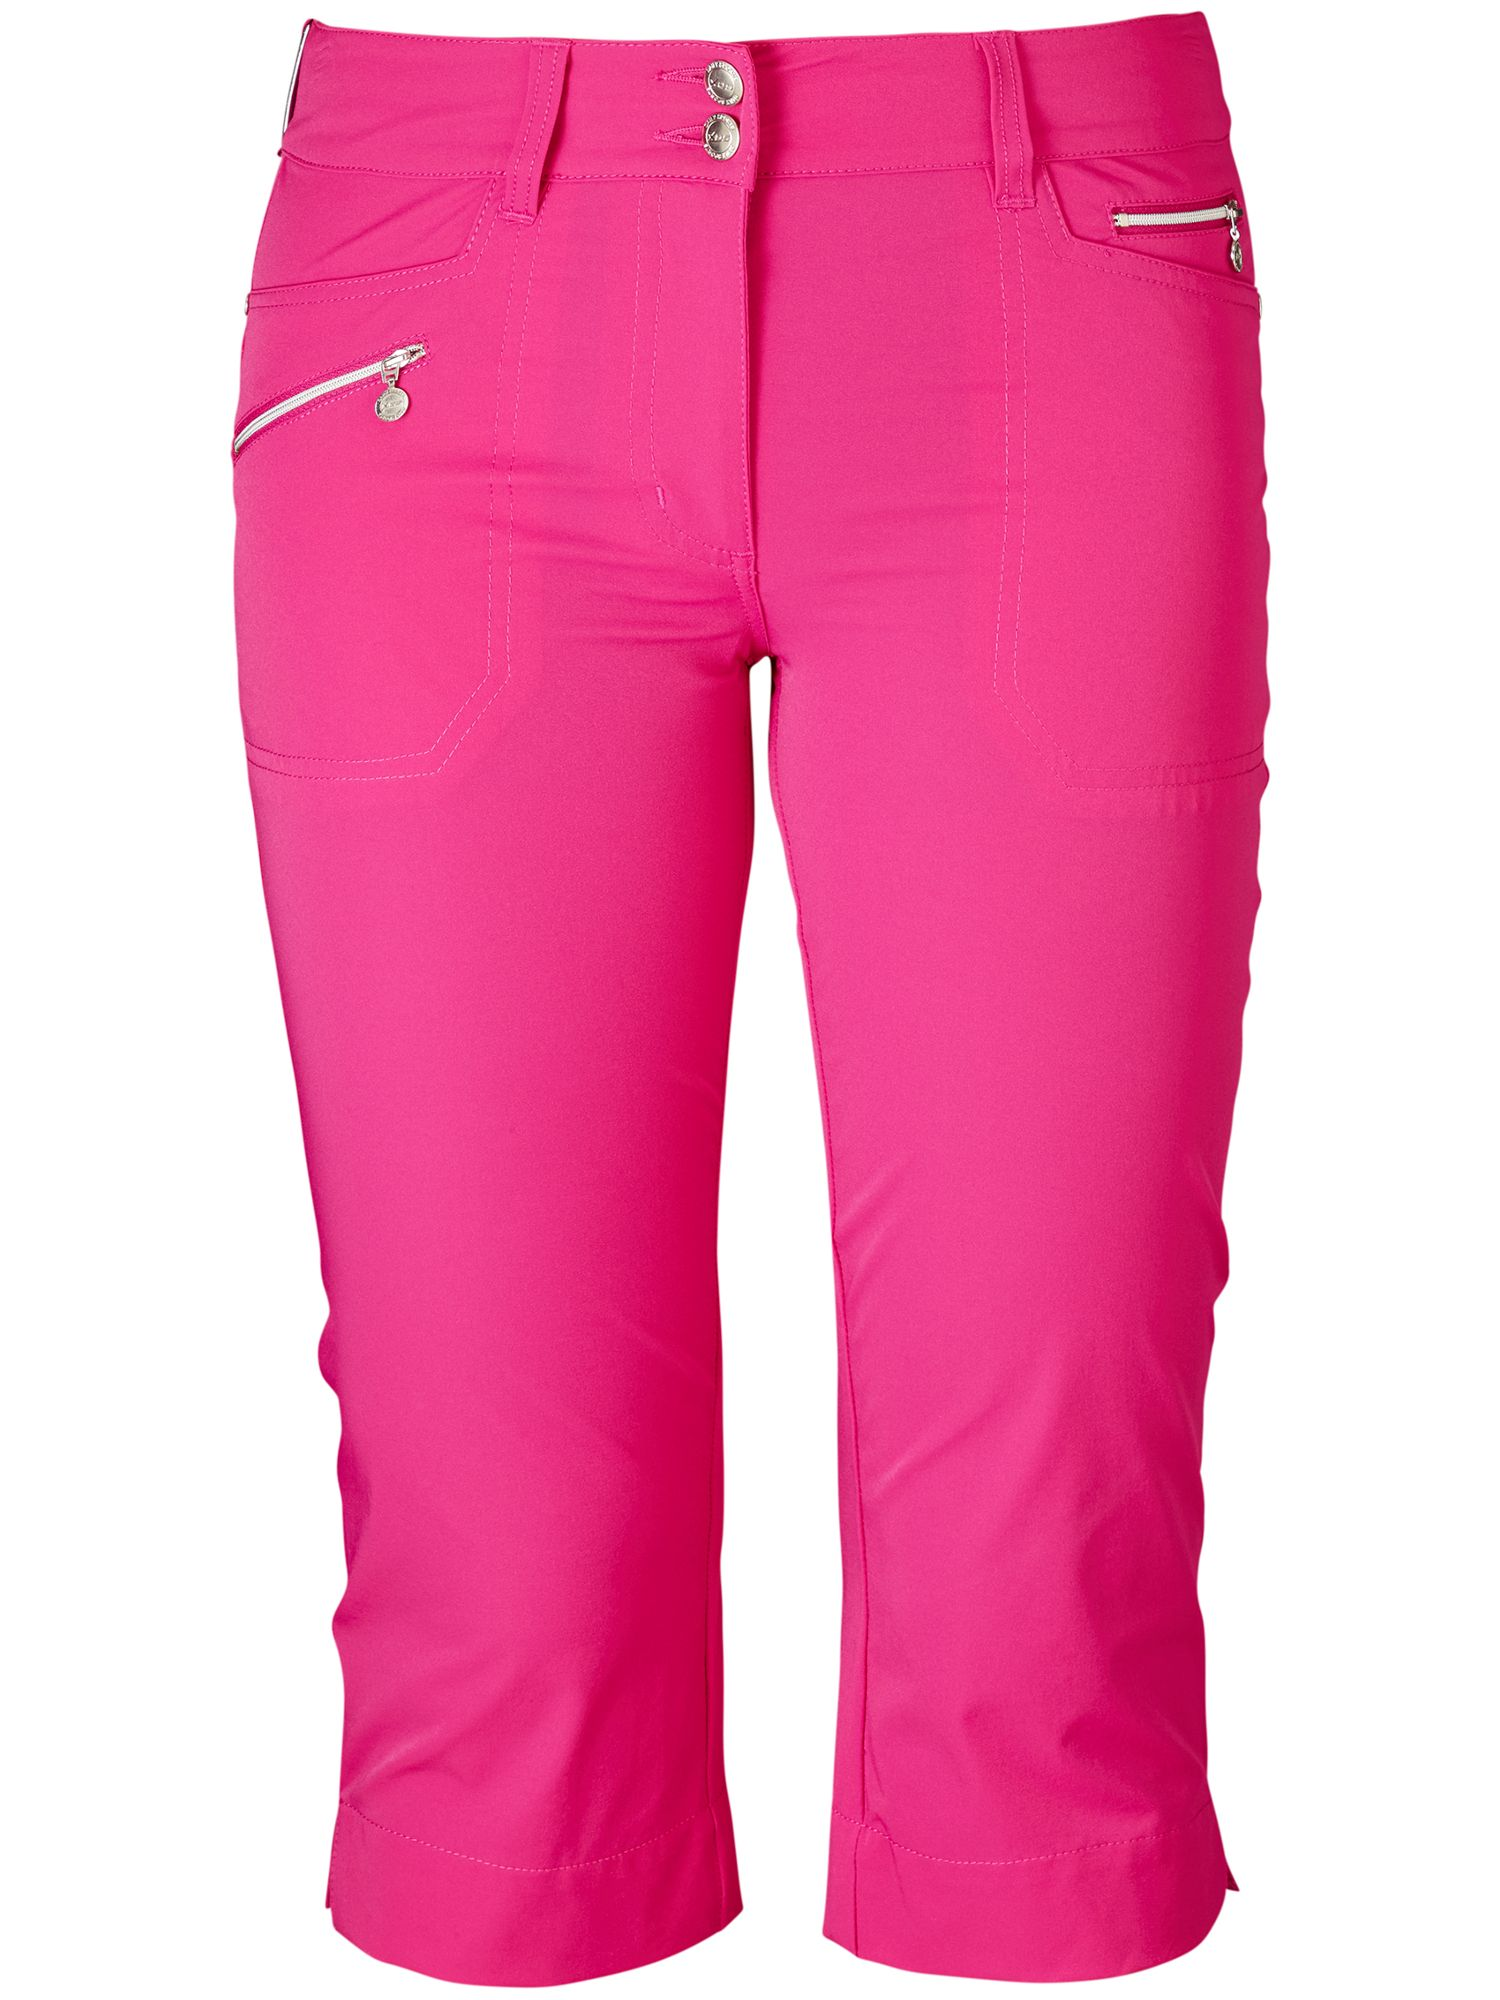 Daily Sports Miracle Capri, Pink